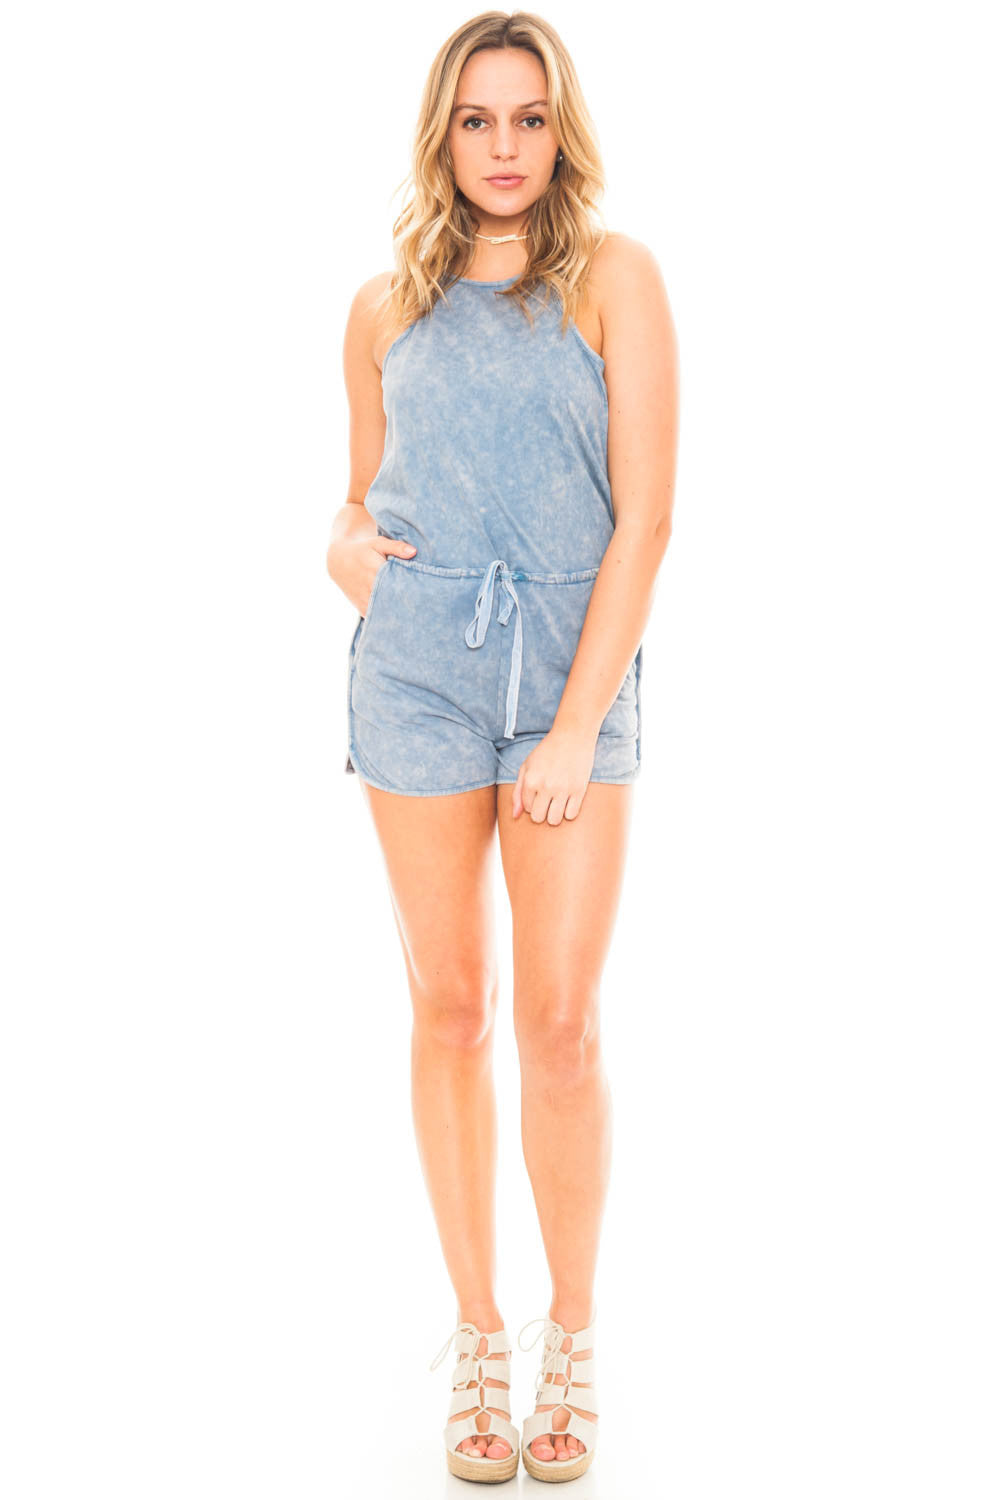 Romper - High Neck Romper with a Tie Waist